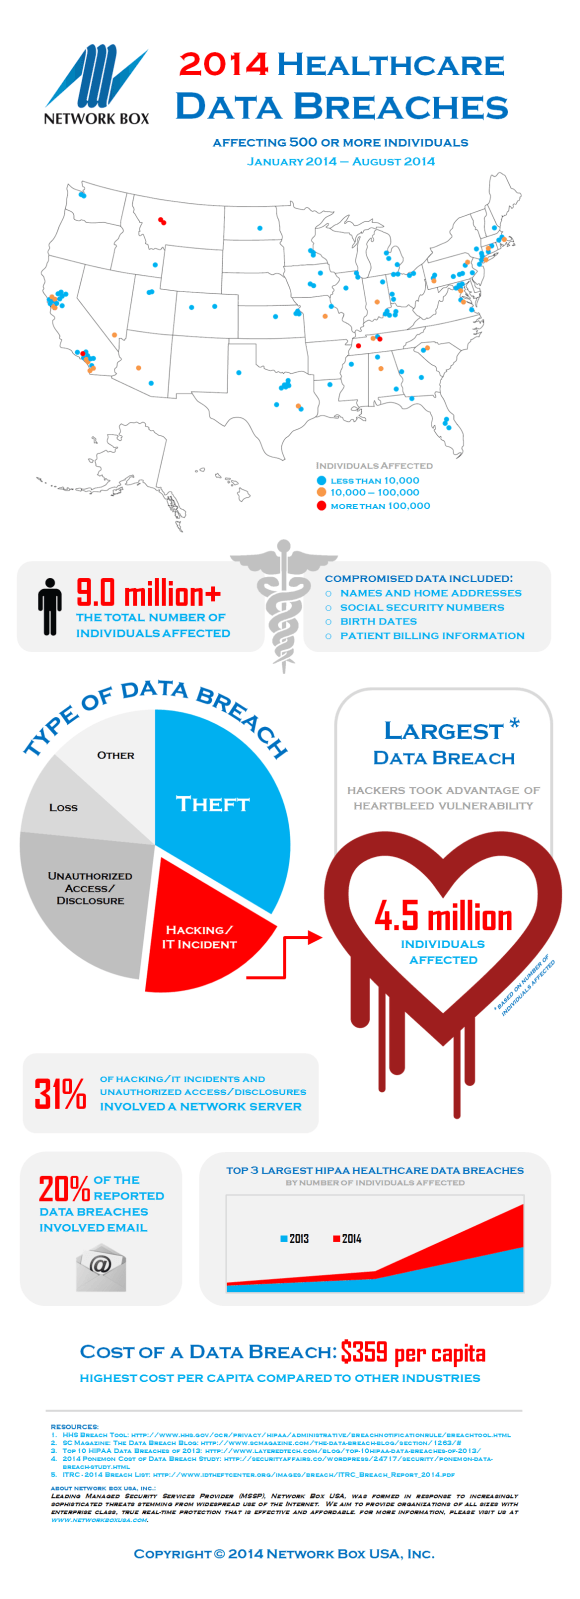 2014 Healthcare Data Breaches